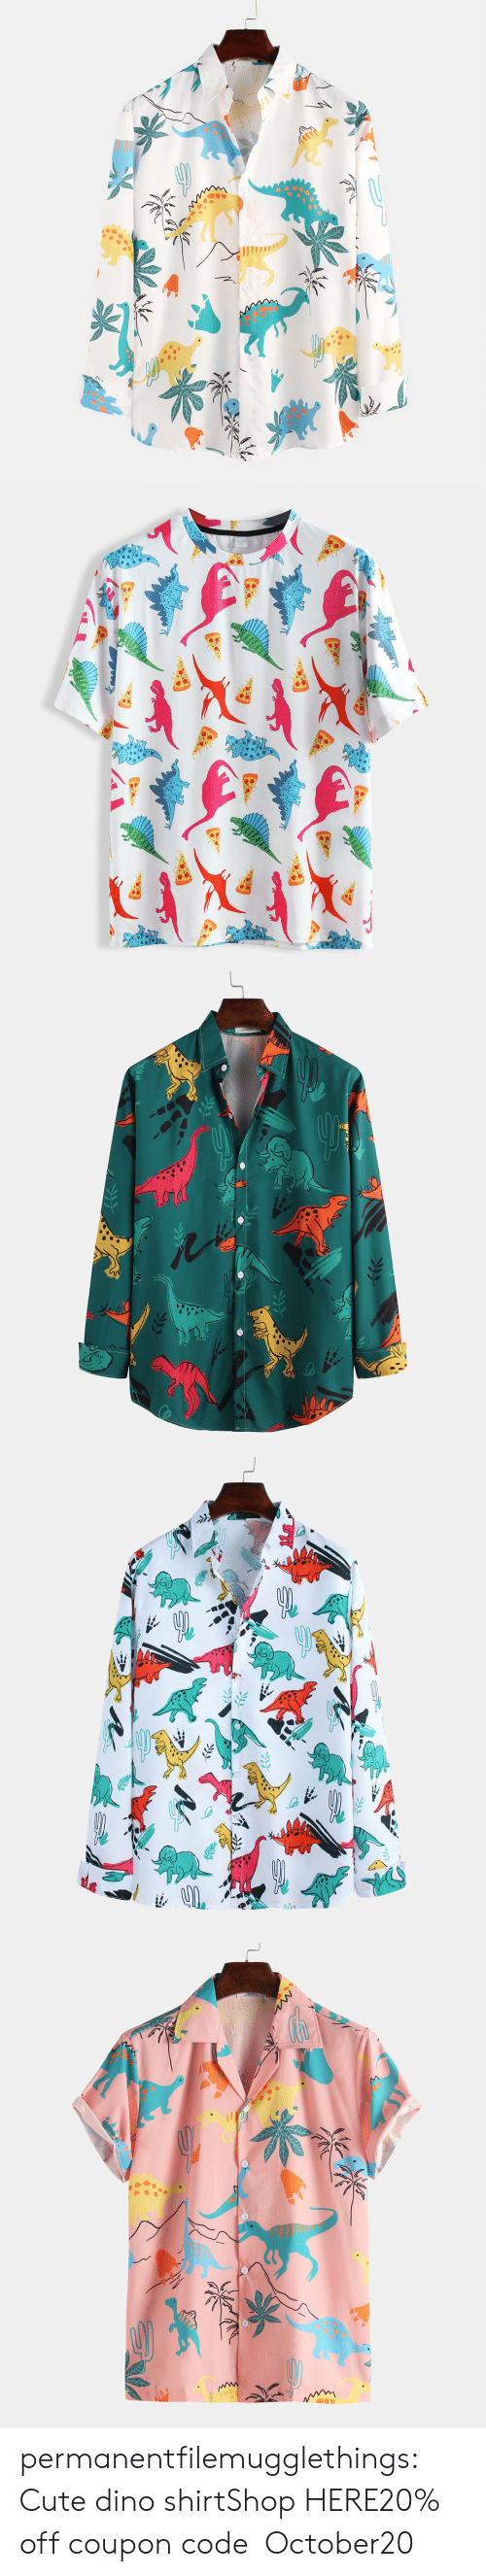 dino: permanentfilemugglethings:  Cute dino shirtShop HERE20% off coupon code:October20